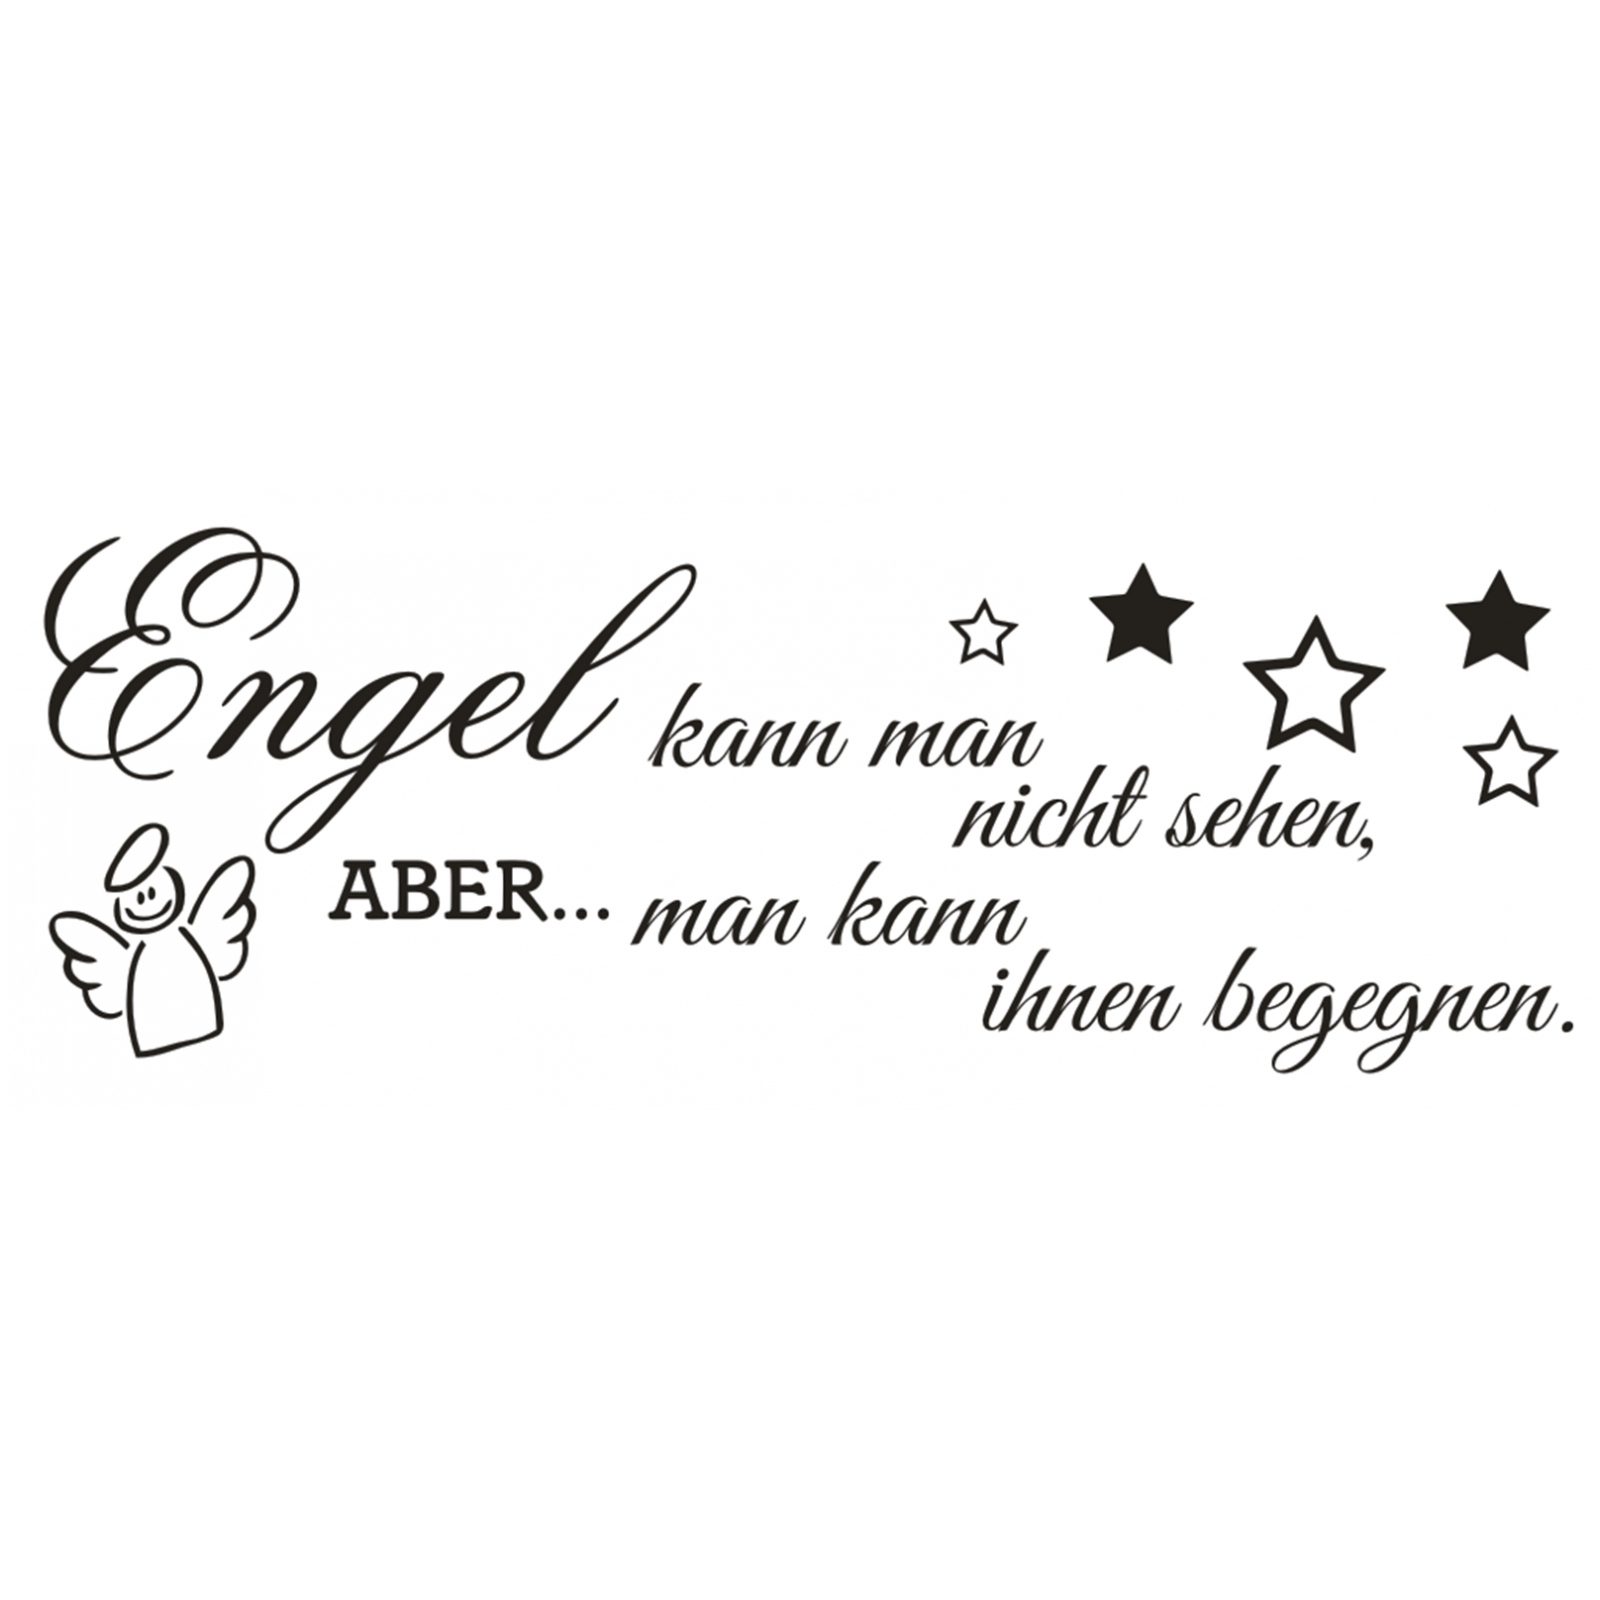 wandtattoo spruch engel kann man nicht sehen wandsticker wandaufkleber sticker 4 ebay. Black Bedroom Furniture Sets. Home Design Ideas